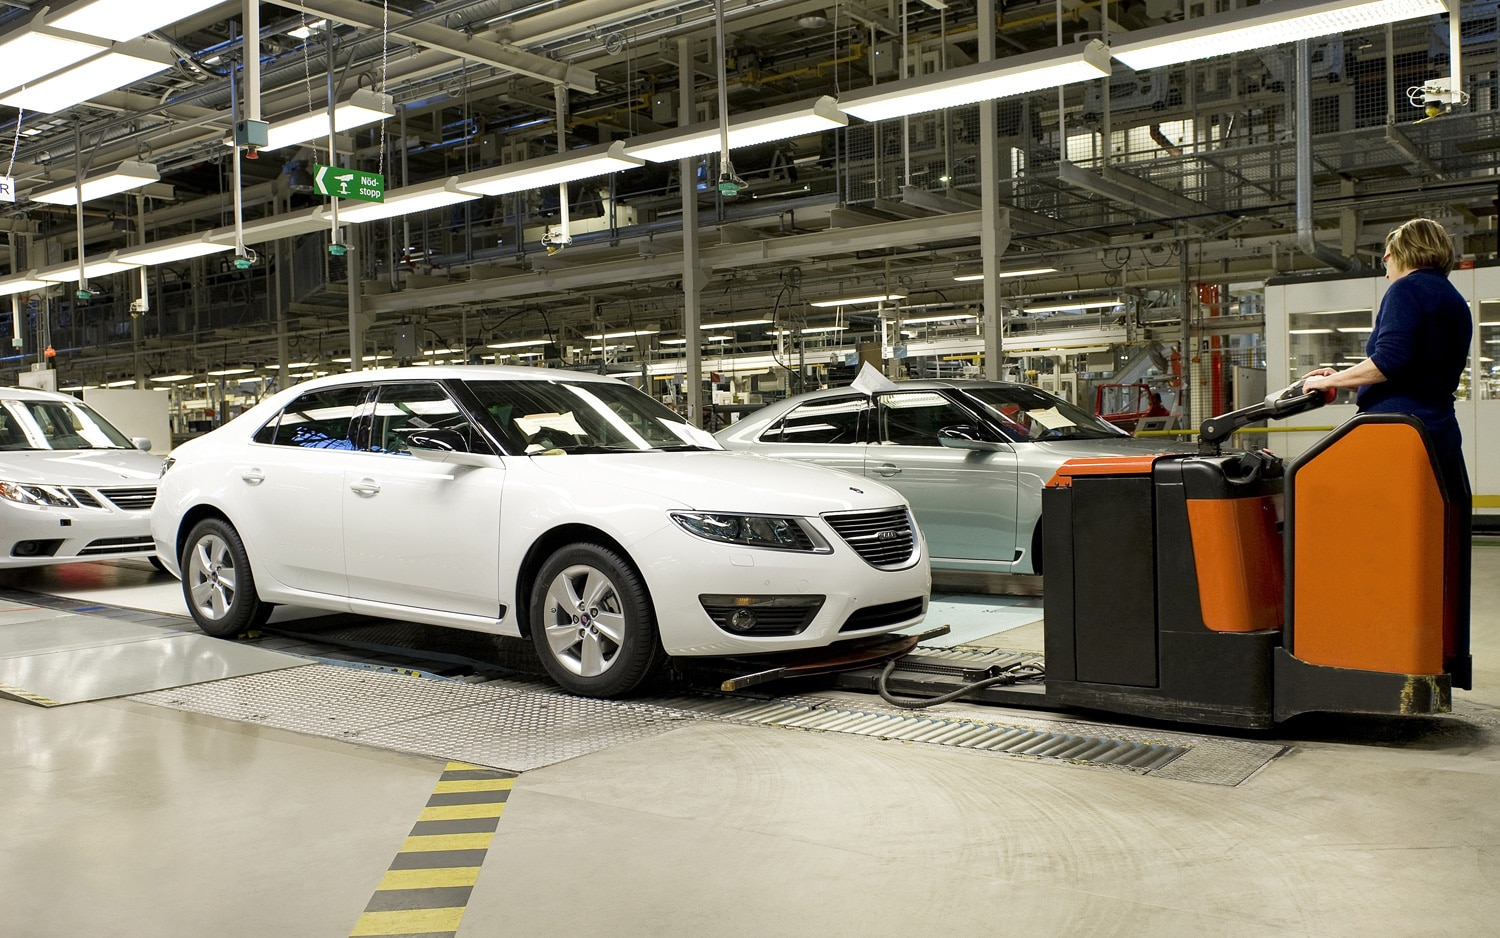 2011 Saab 9 5 Production Line Side View41